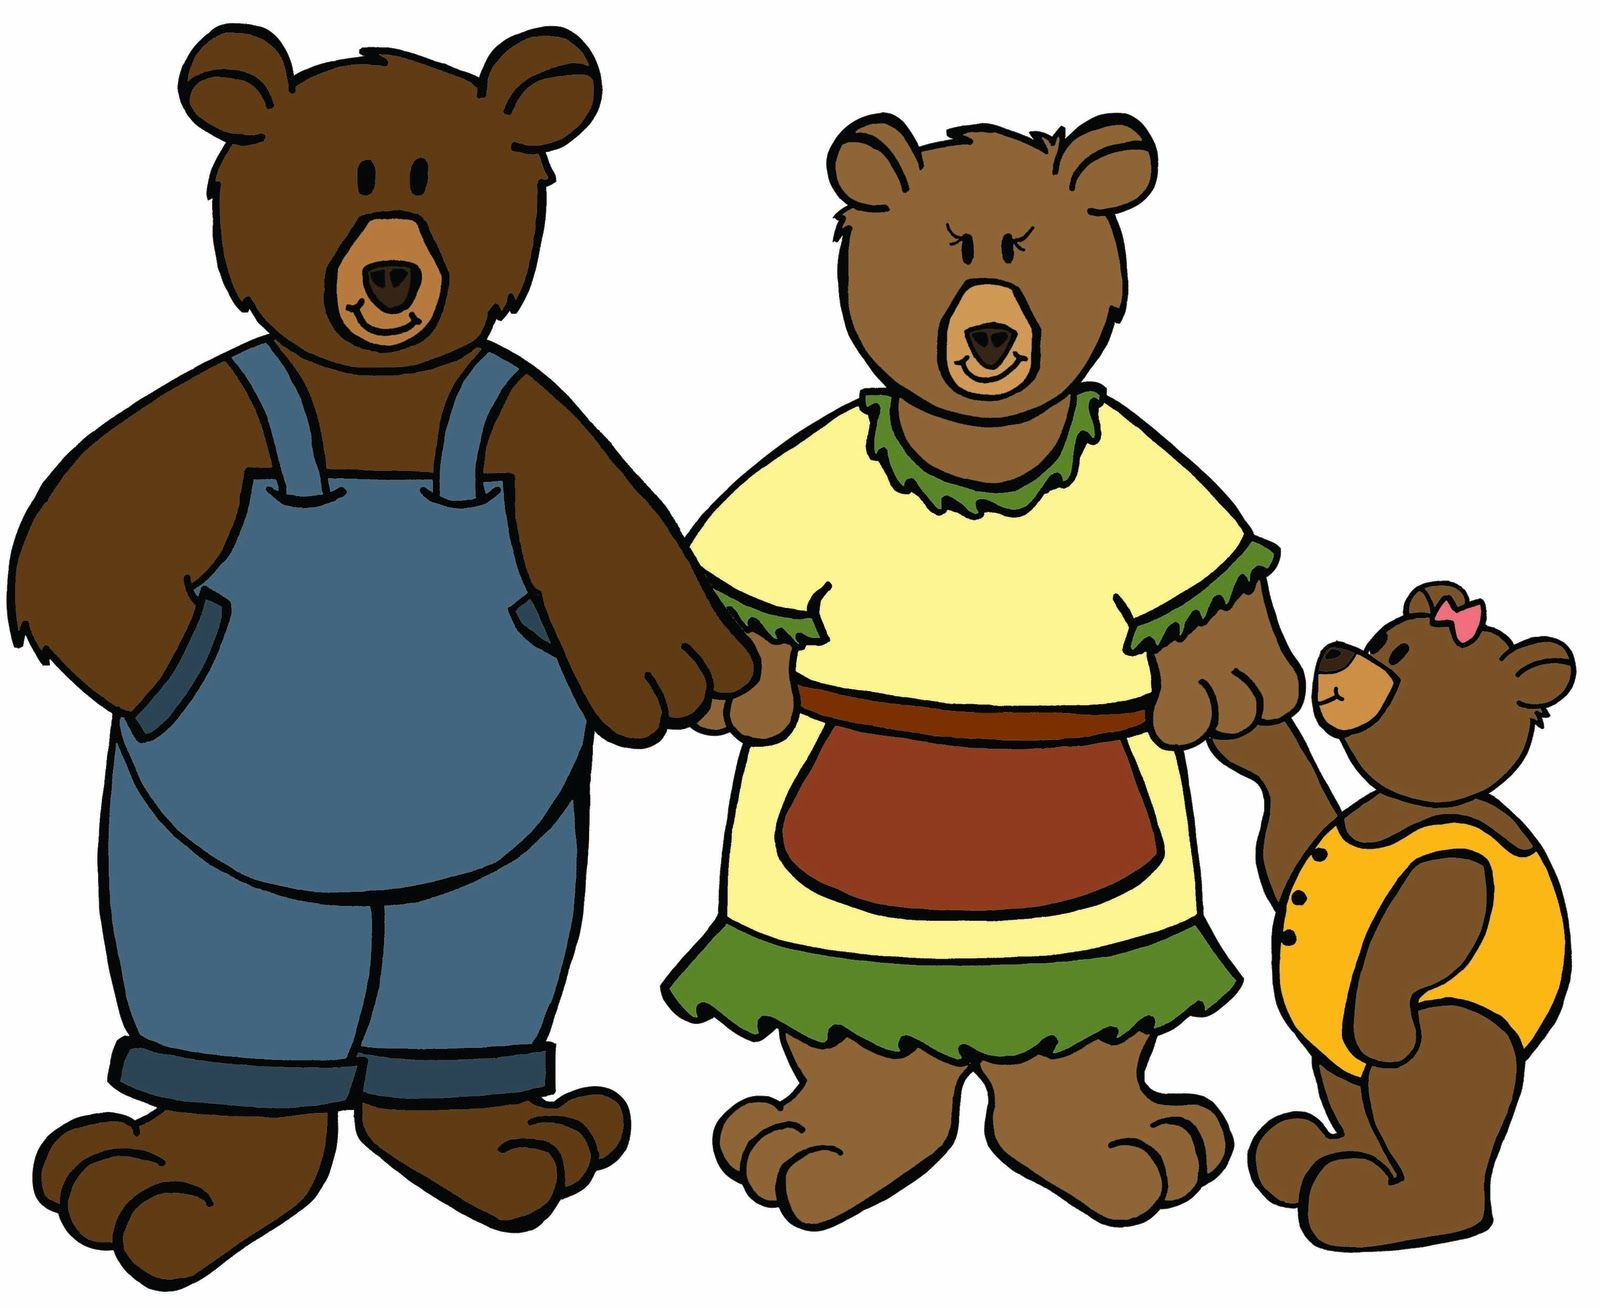 goldilocks and the three bears clipart at getdrawings com free for rh getdrawings com clipart goldilocks and the three bears